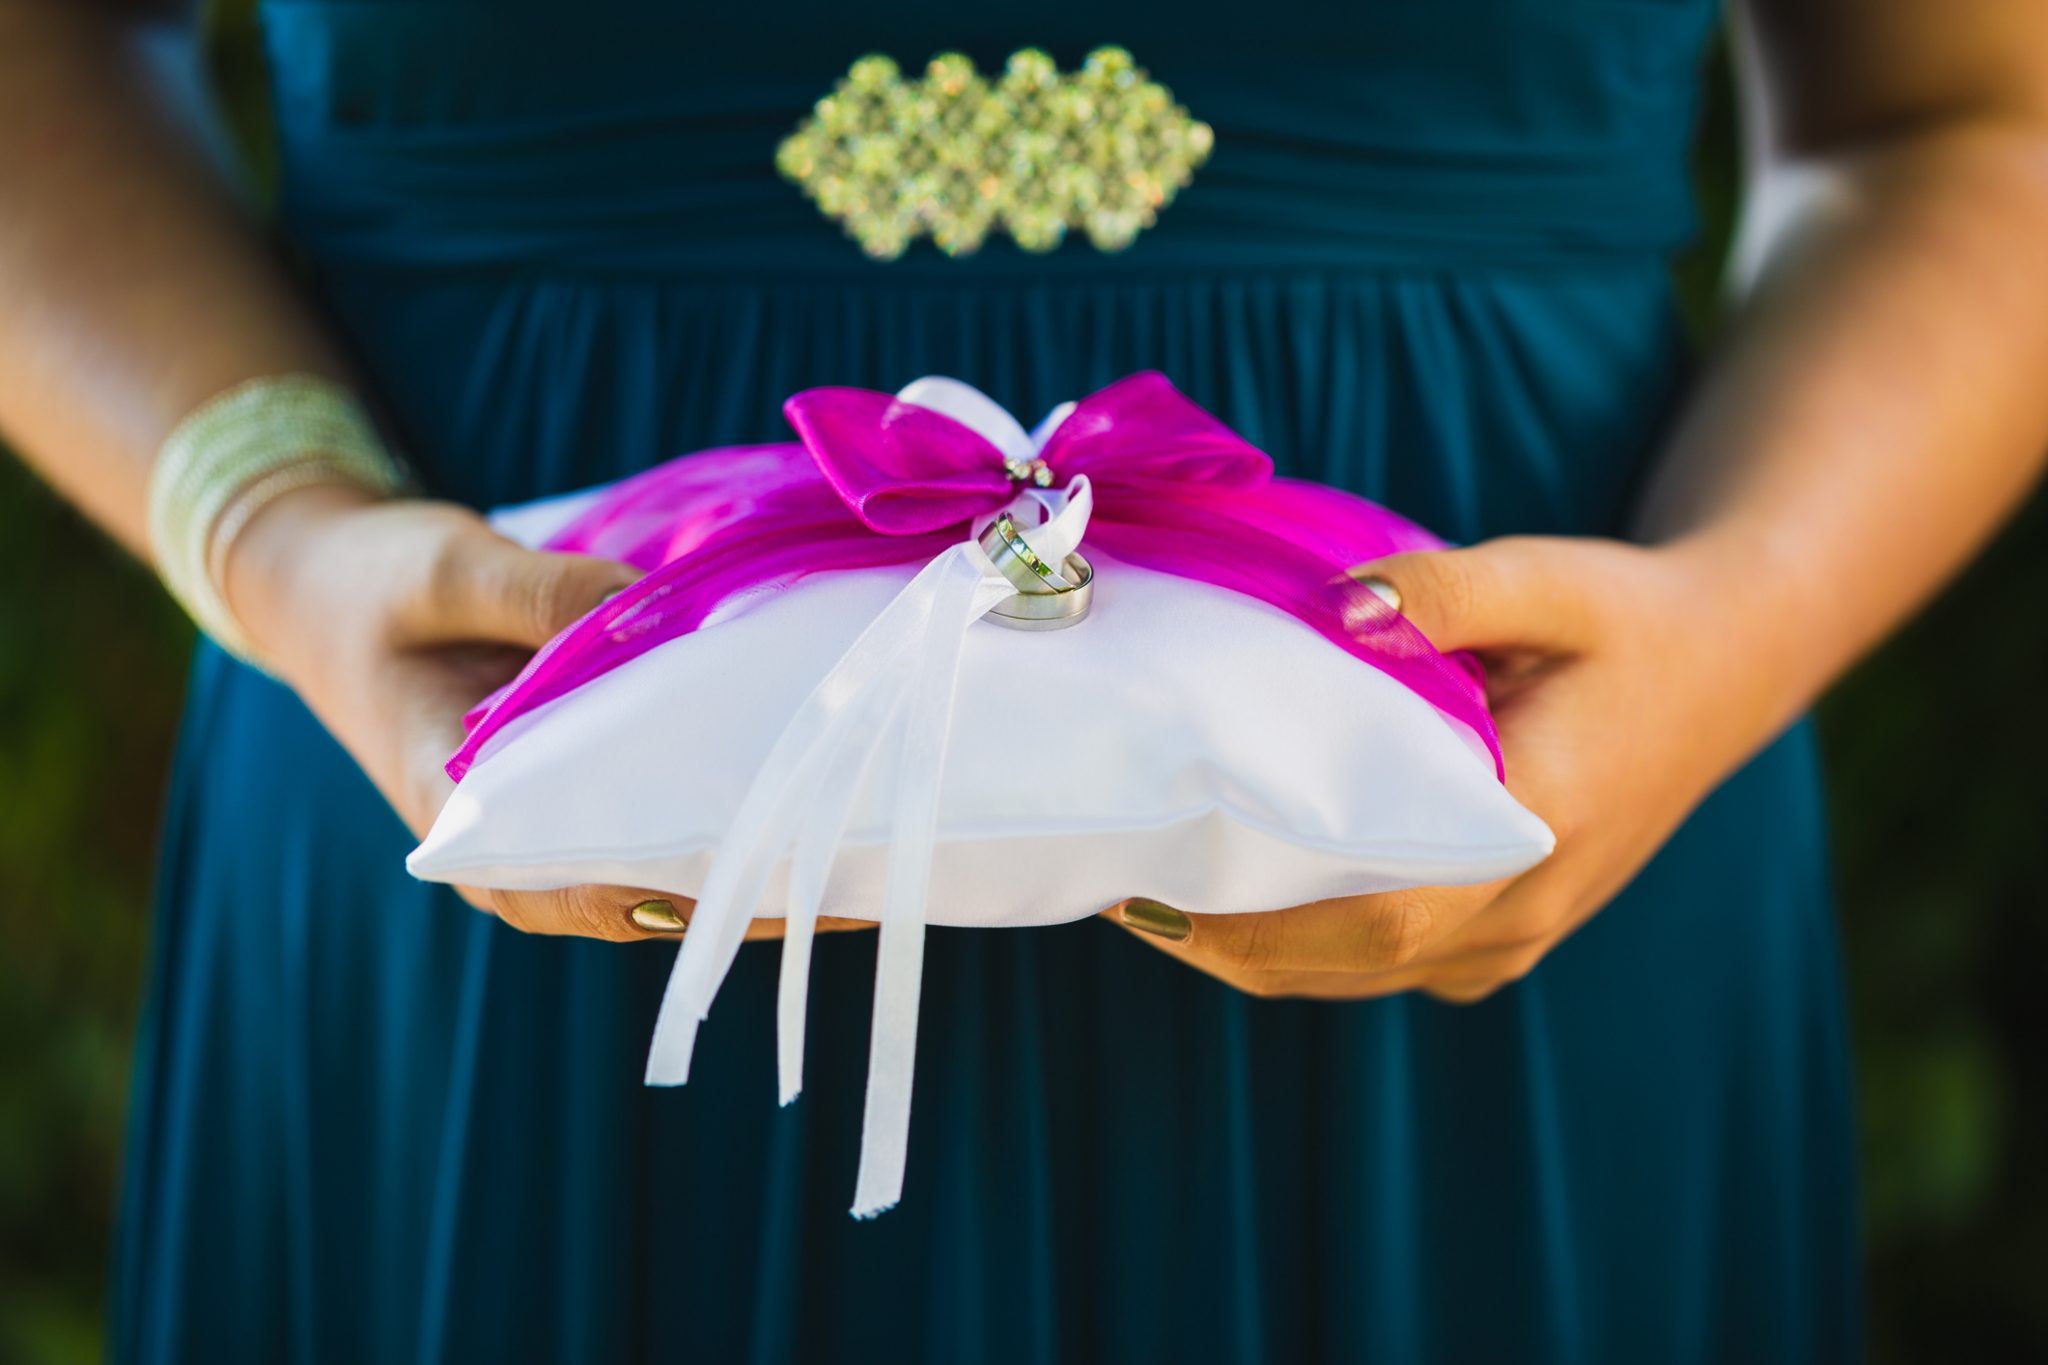 Female hands holding wedding rings on a cushion